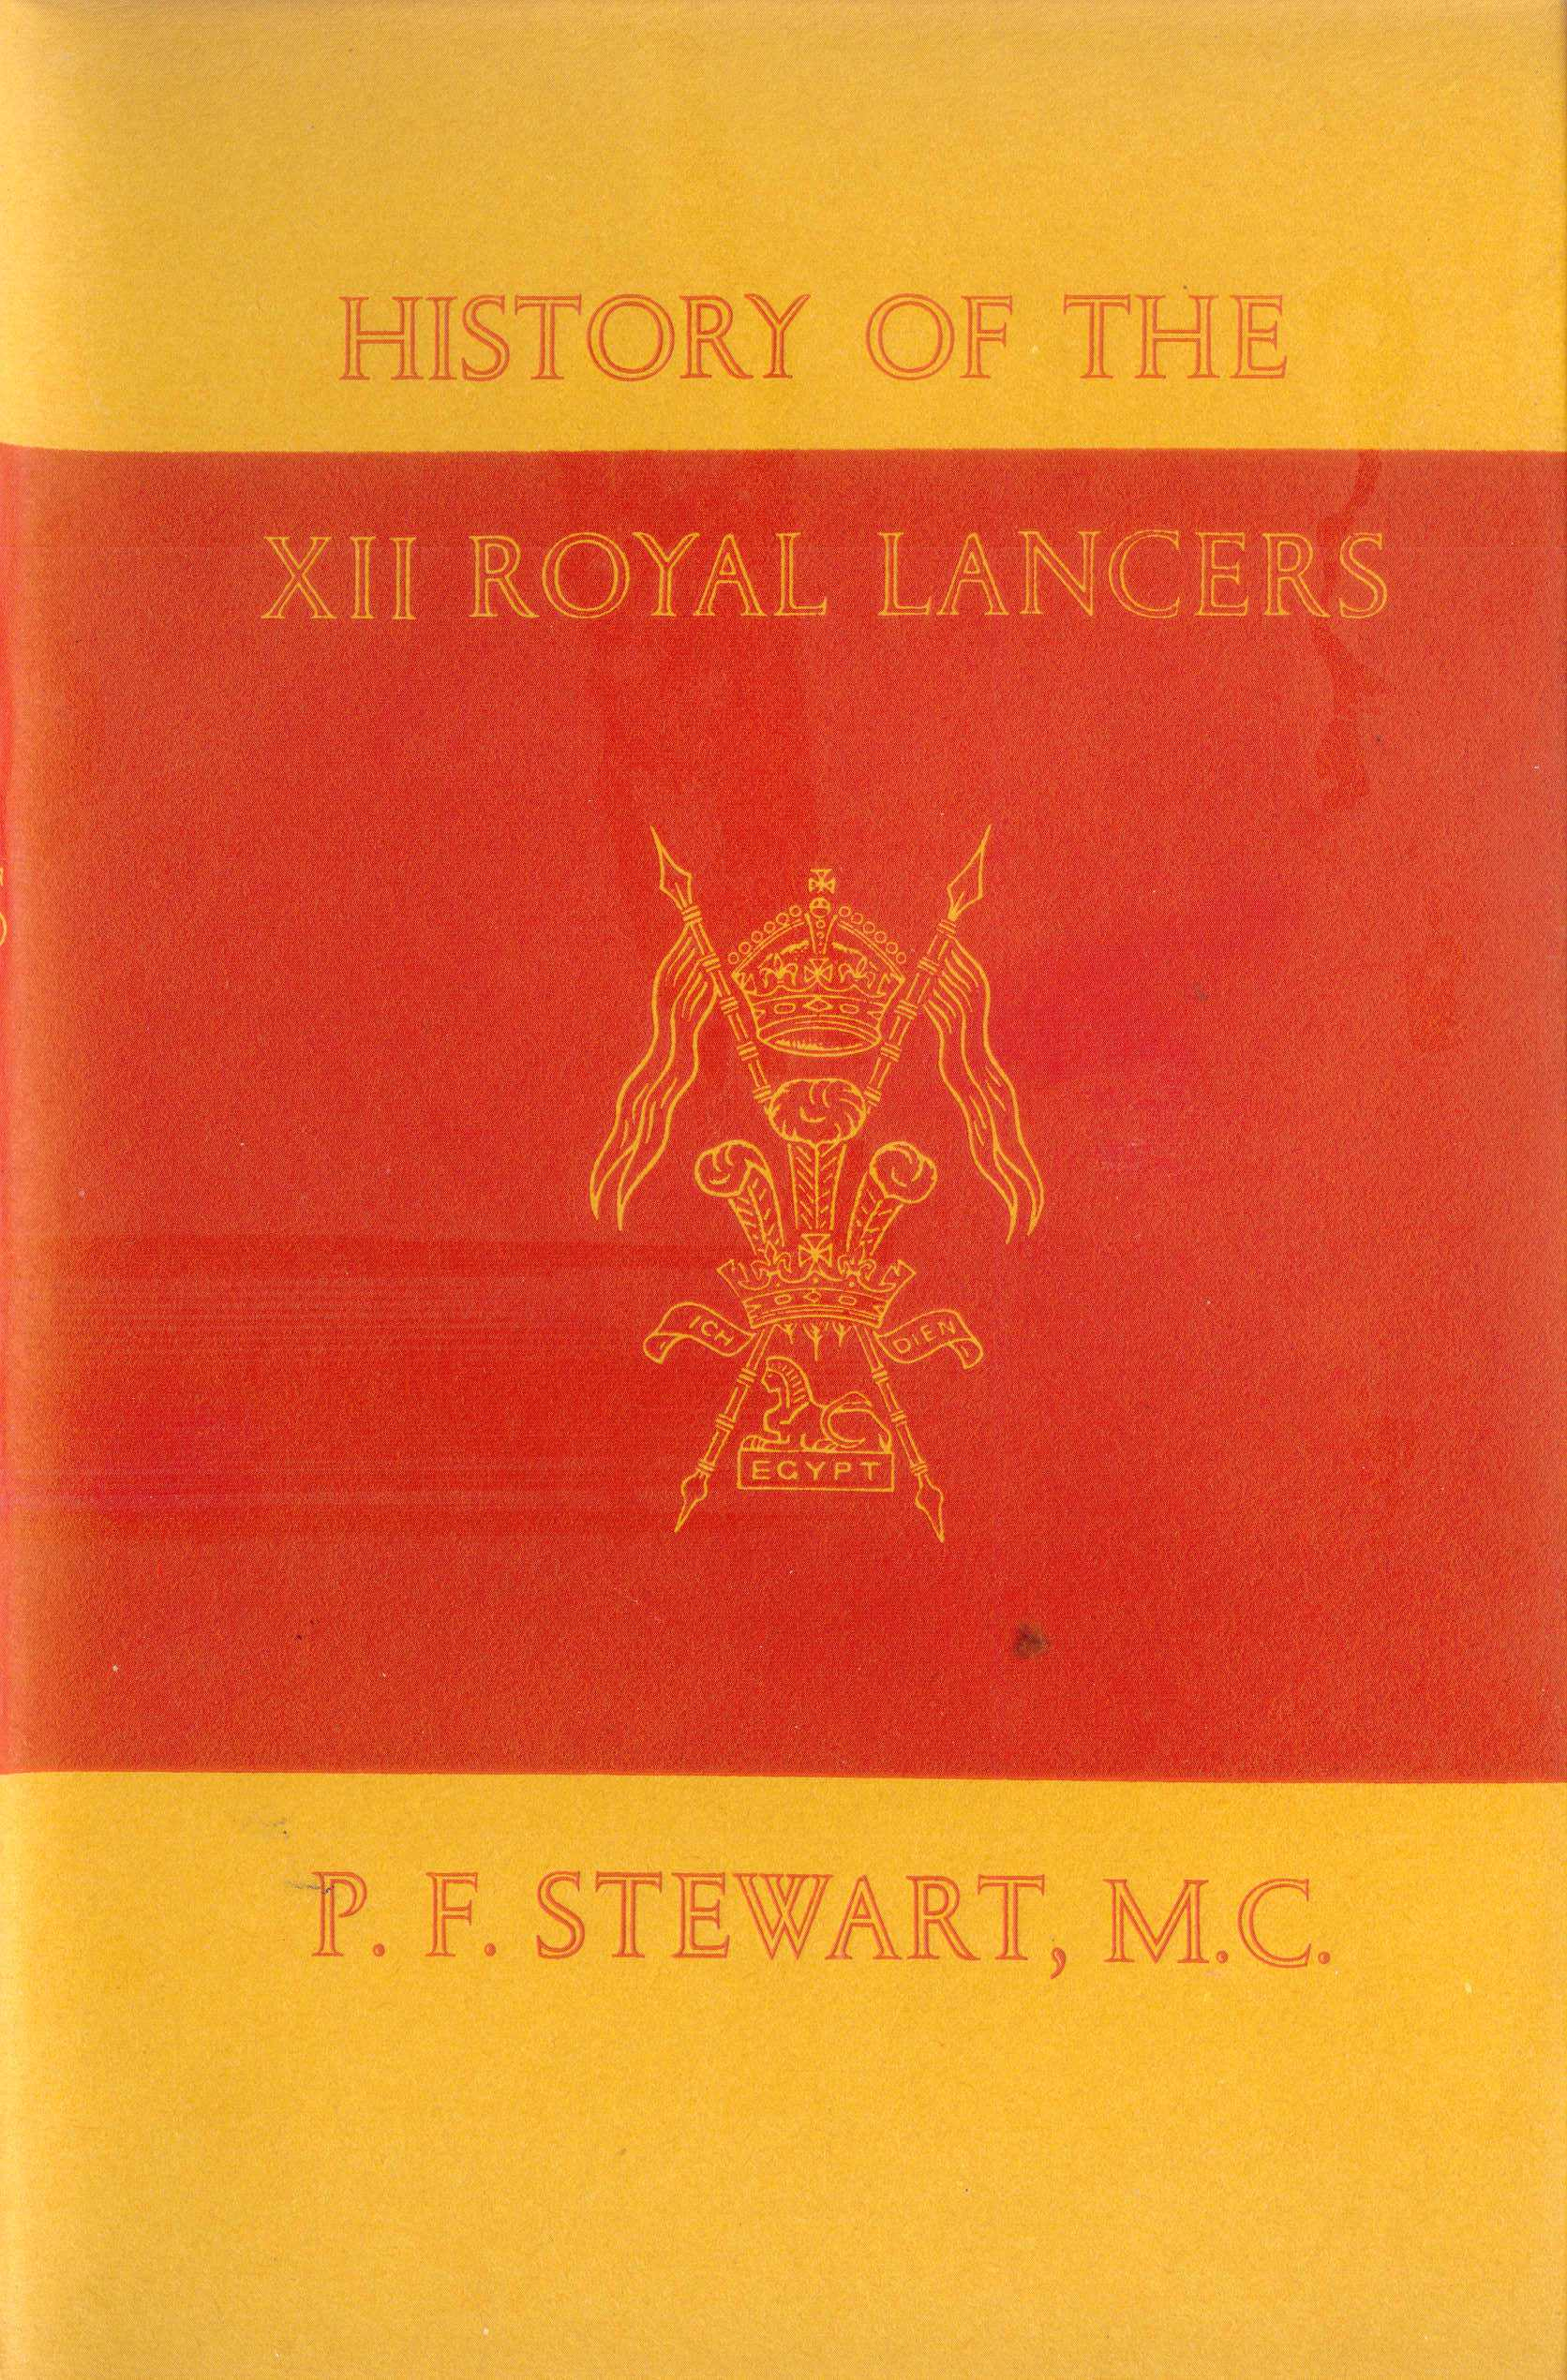 History of the XII Royal Lancers